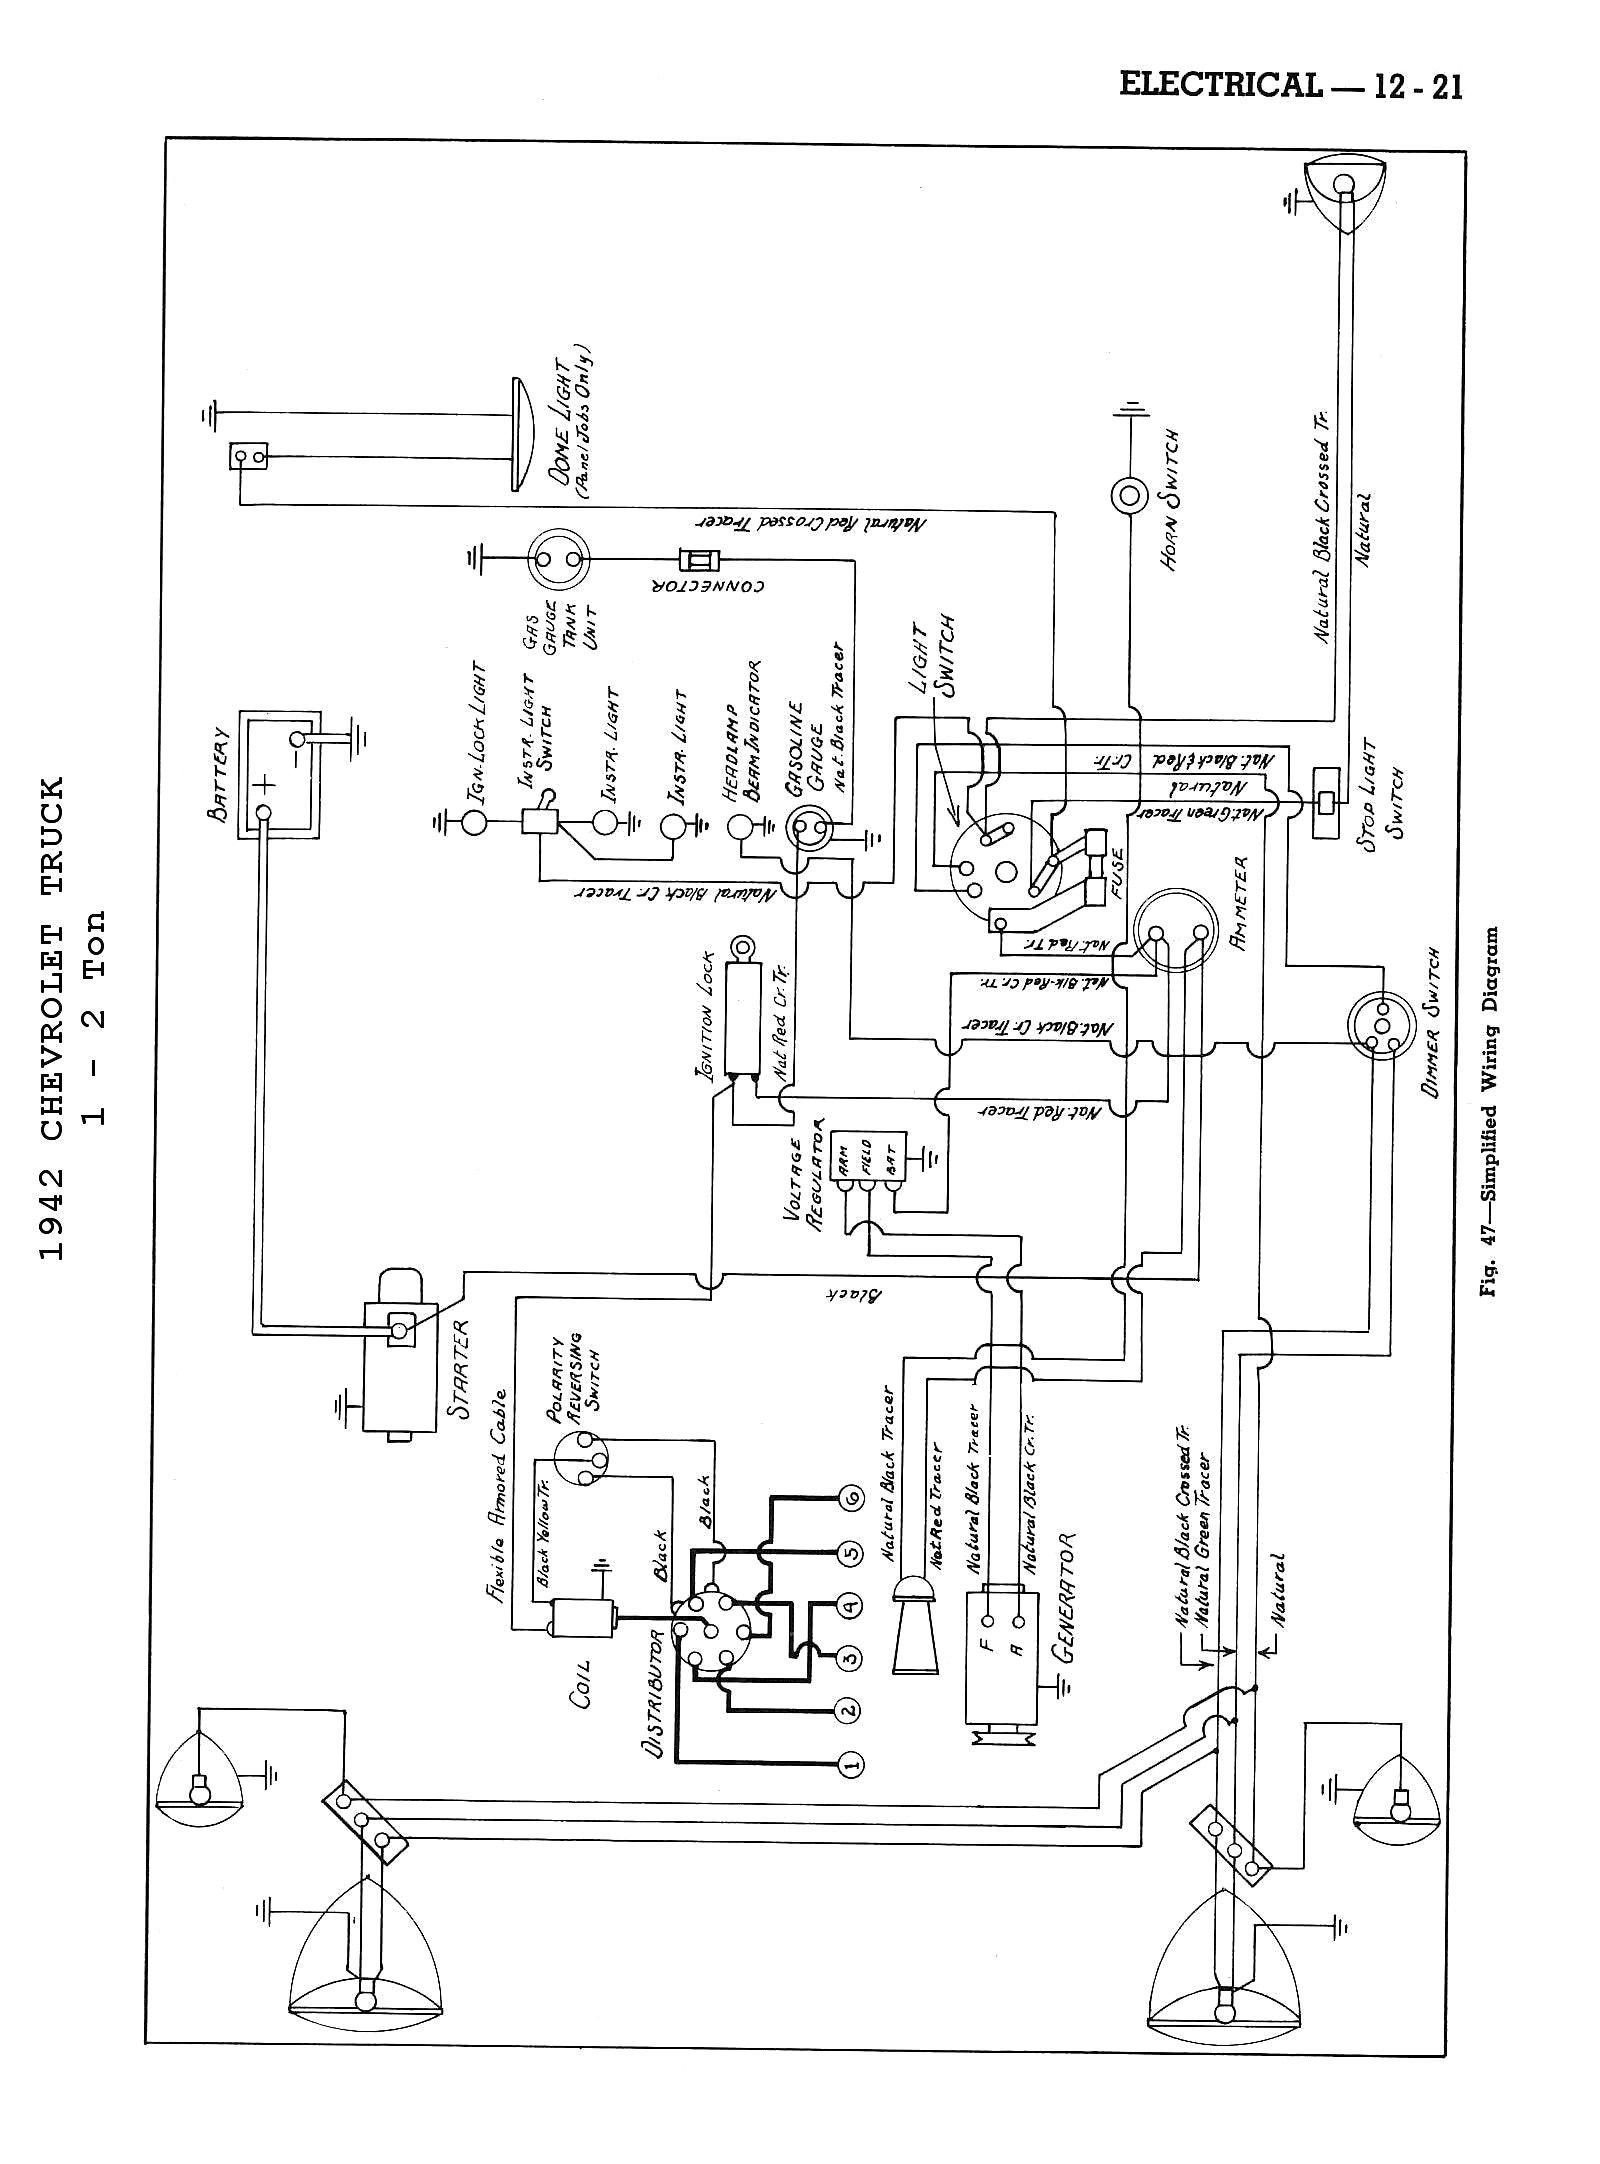 Suburban Water Heater Wiring Diagram Denso Alternator Thermostat Wiring Alternator